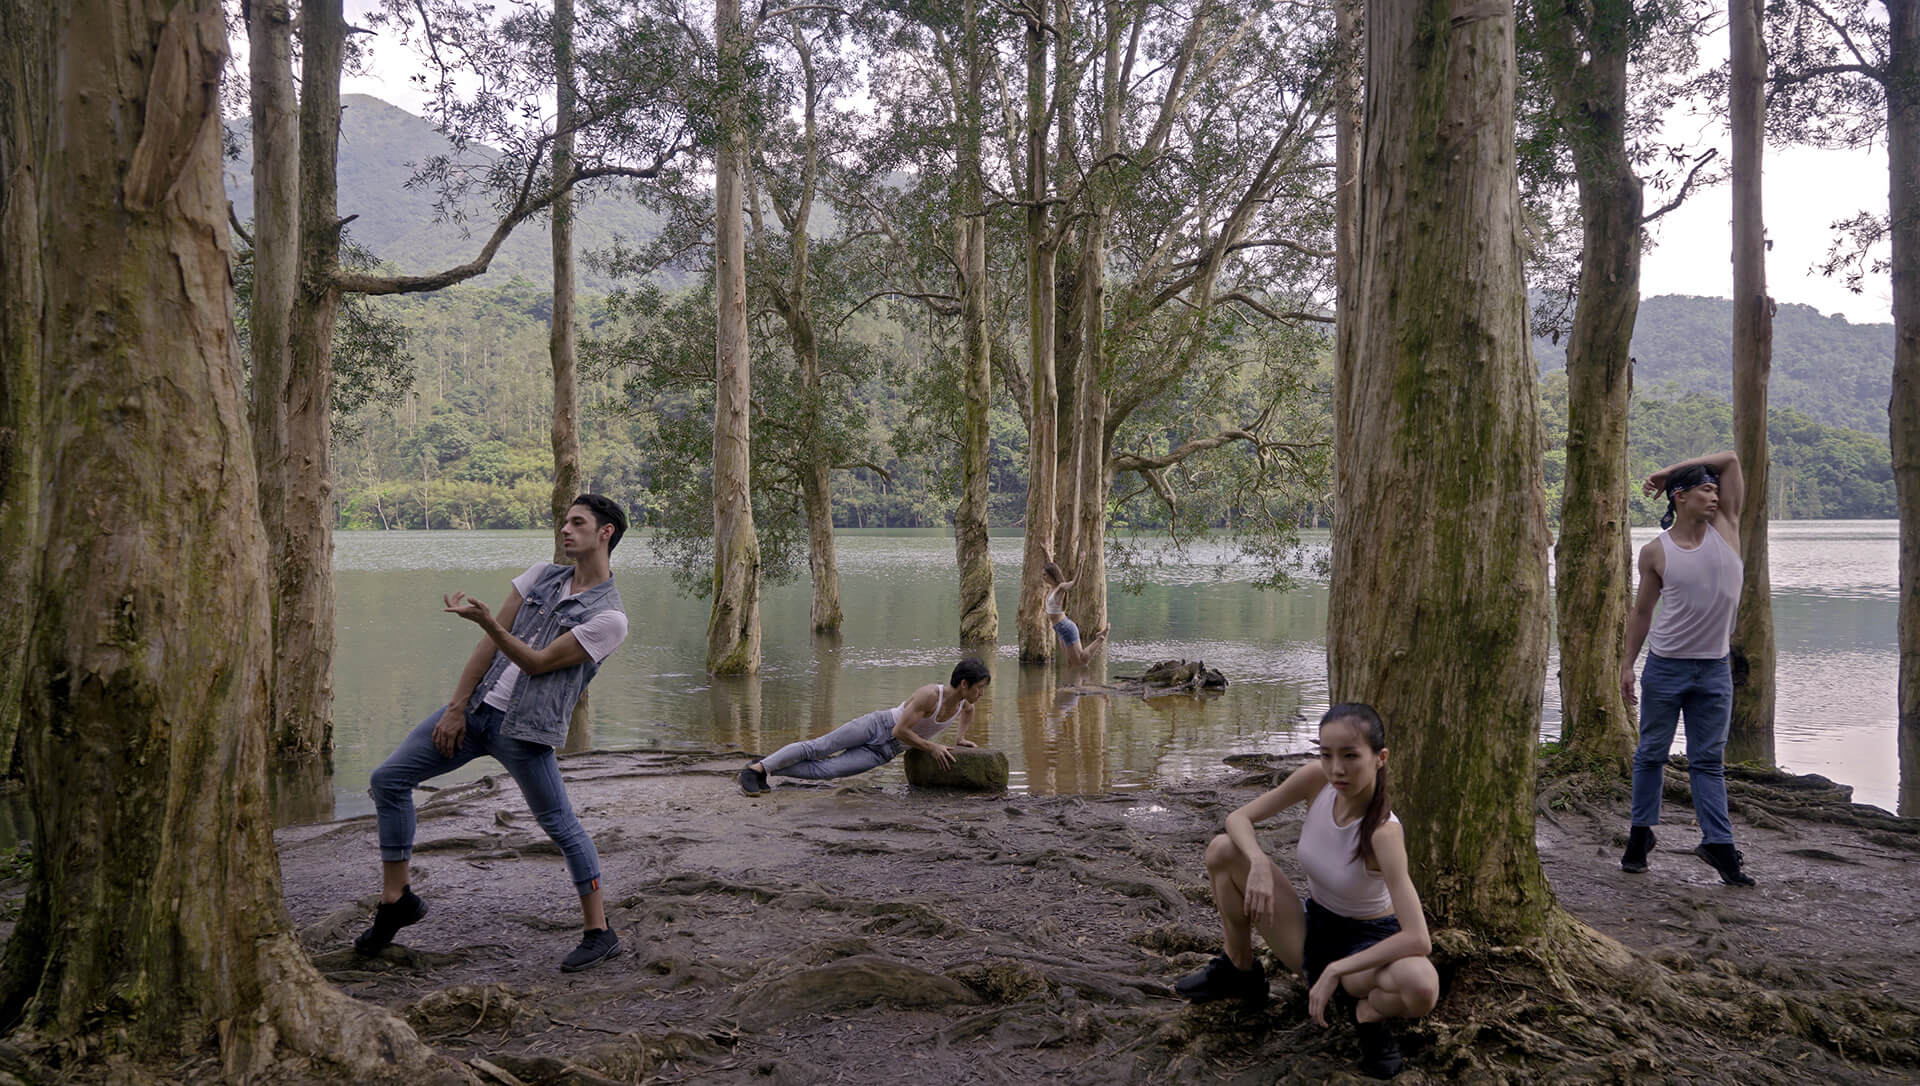 A still from the film Lying Together, which was filmed in rural and urban settings across Hong Kong by Derrick Fong | Corey Baker Dance | STIRworld